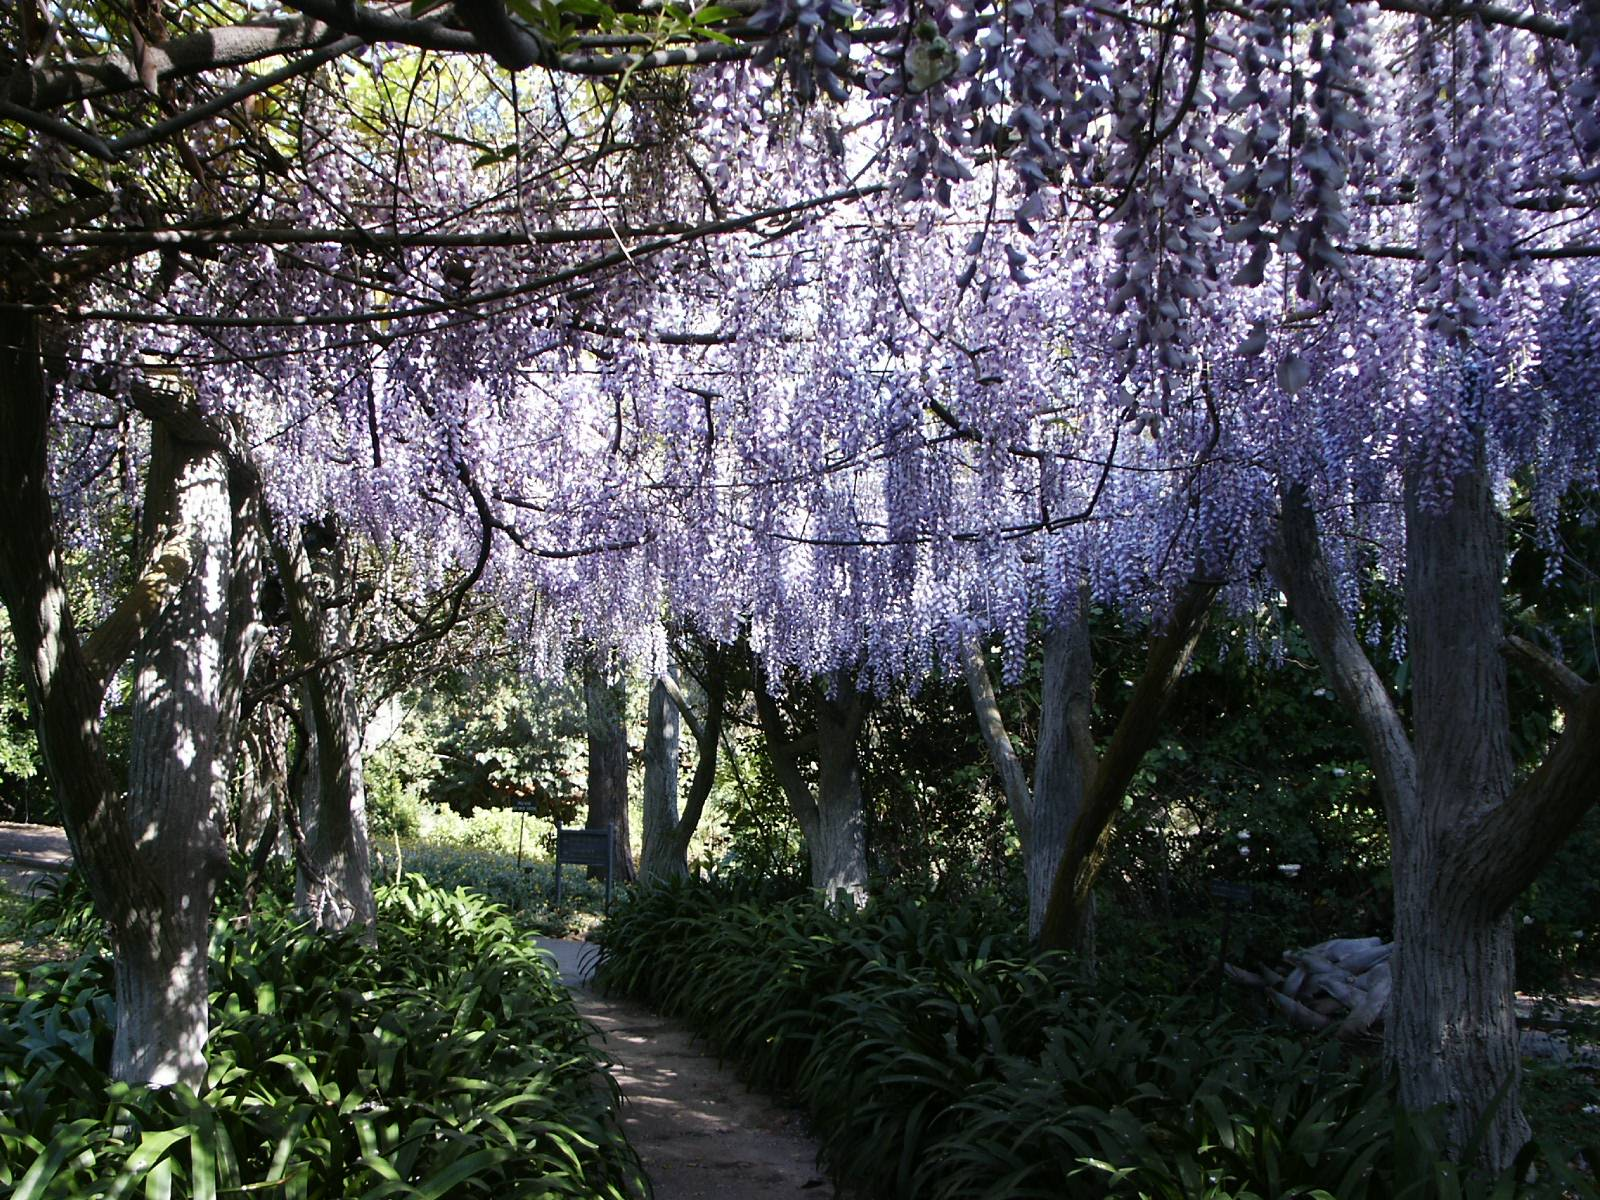 FileHuntington Library Gardens Wisteria Arbor 2009